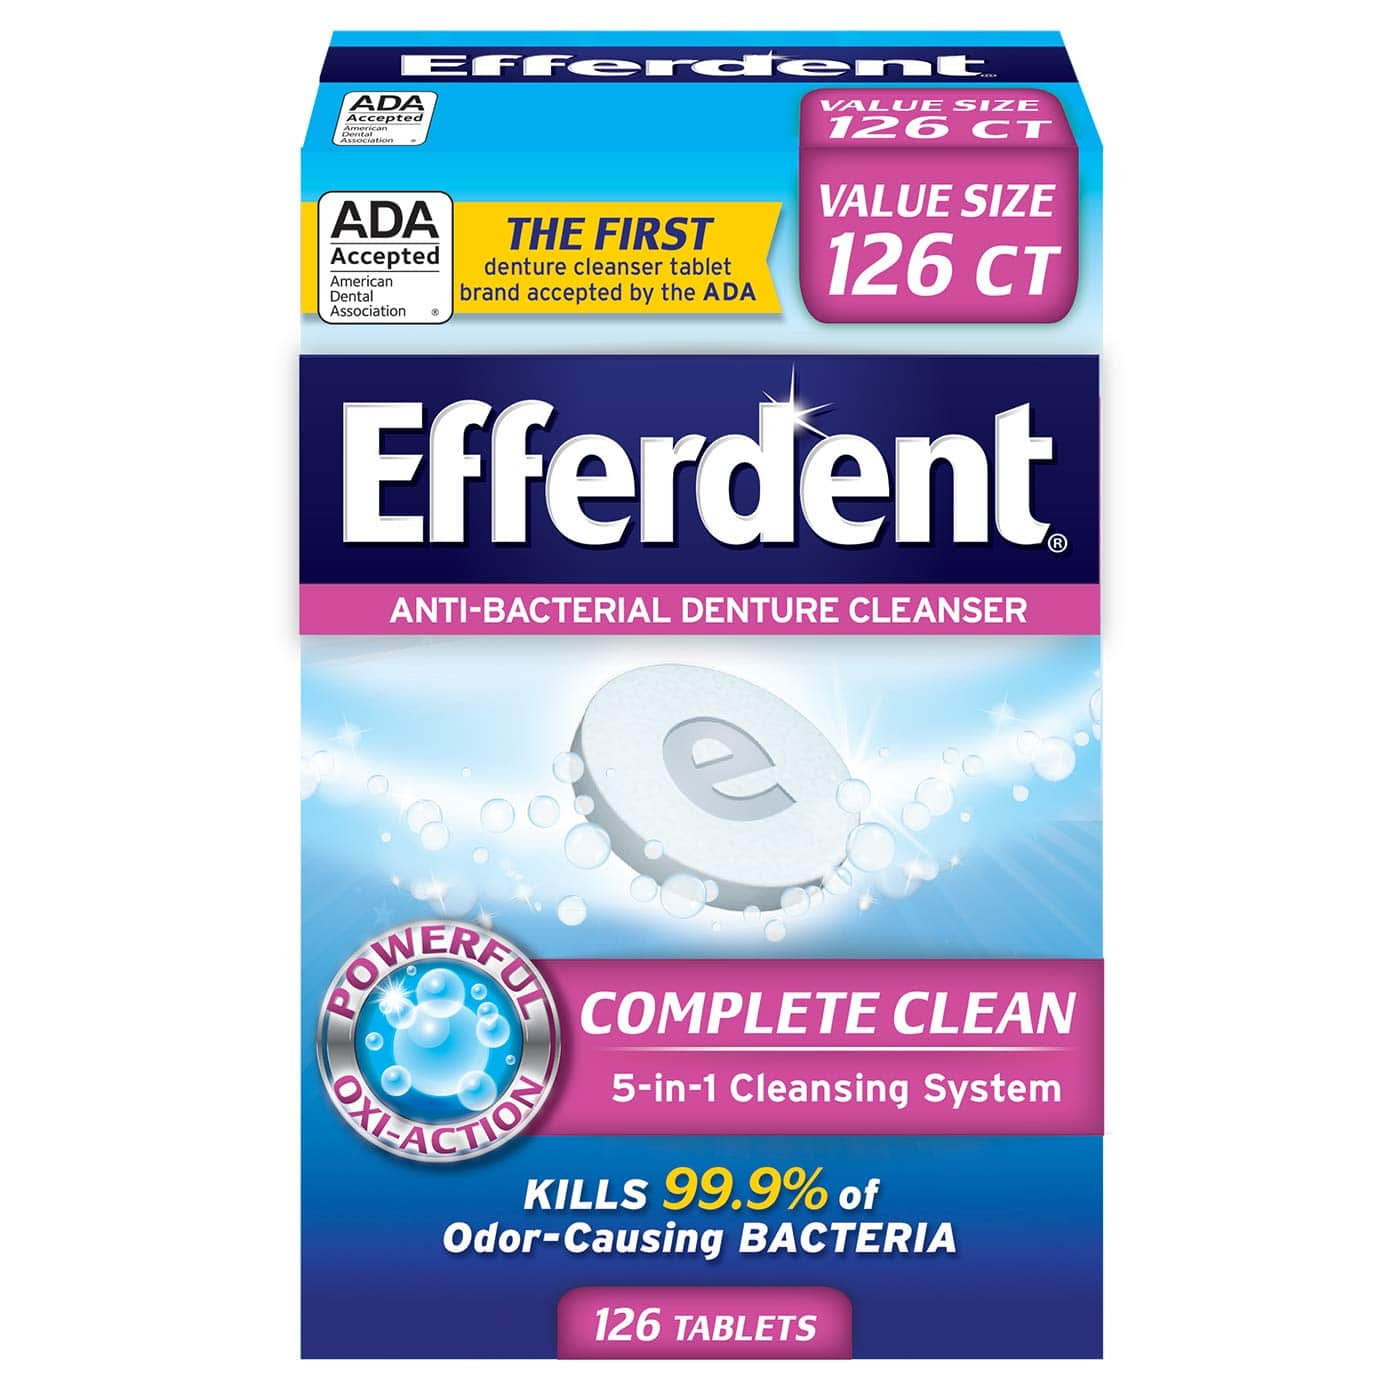 Efferdent Anti-Bacterial Denture Cleanser | 5-in-1 Cleansing System | 126 Count (Pack of 1) $3.55 + FS orders over $25 @Amazon